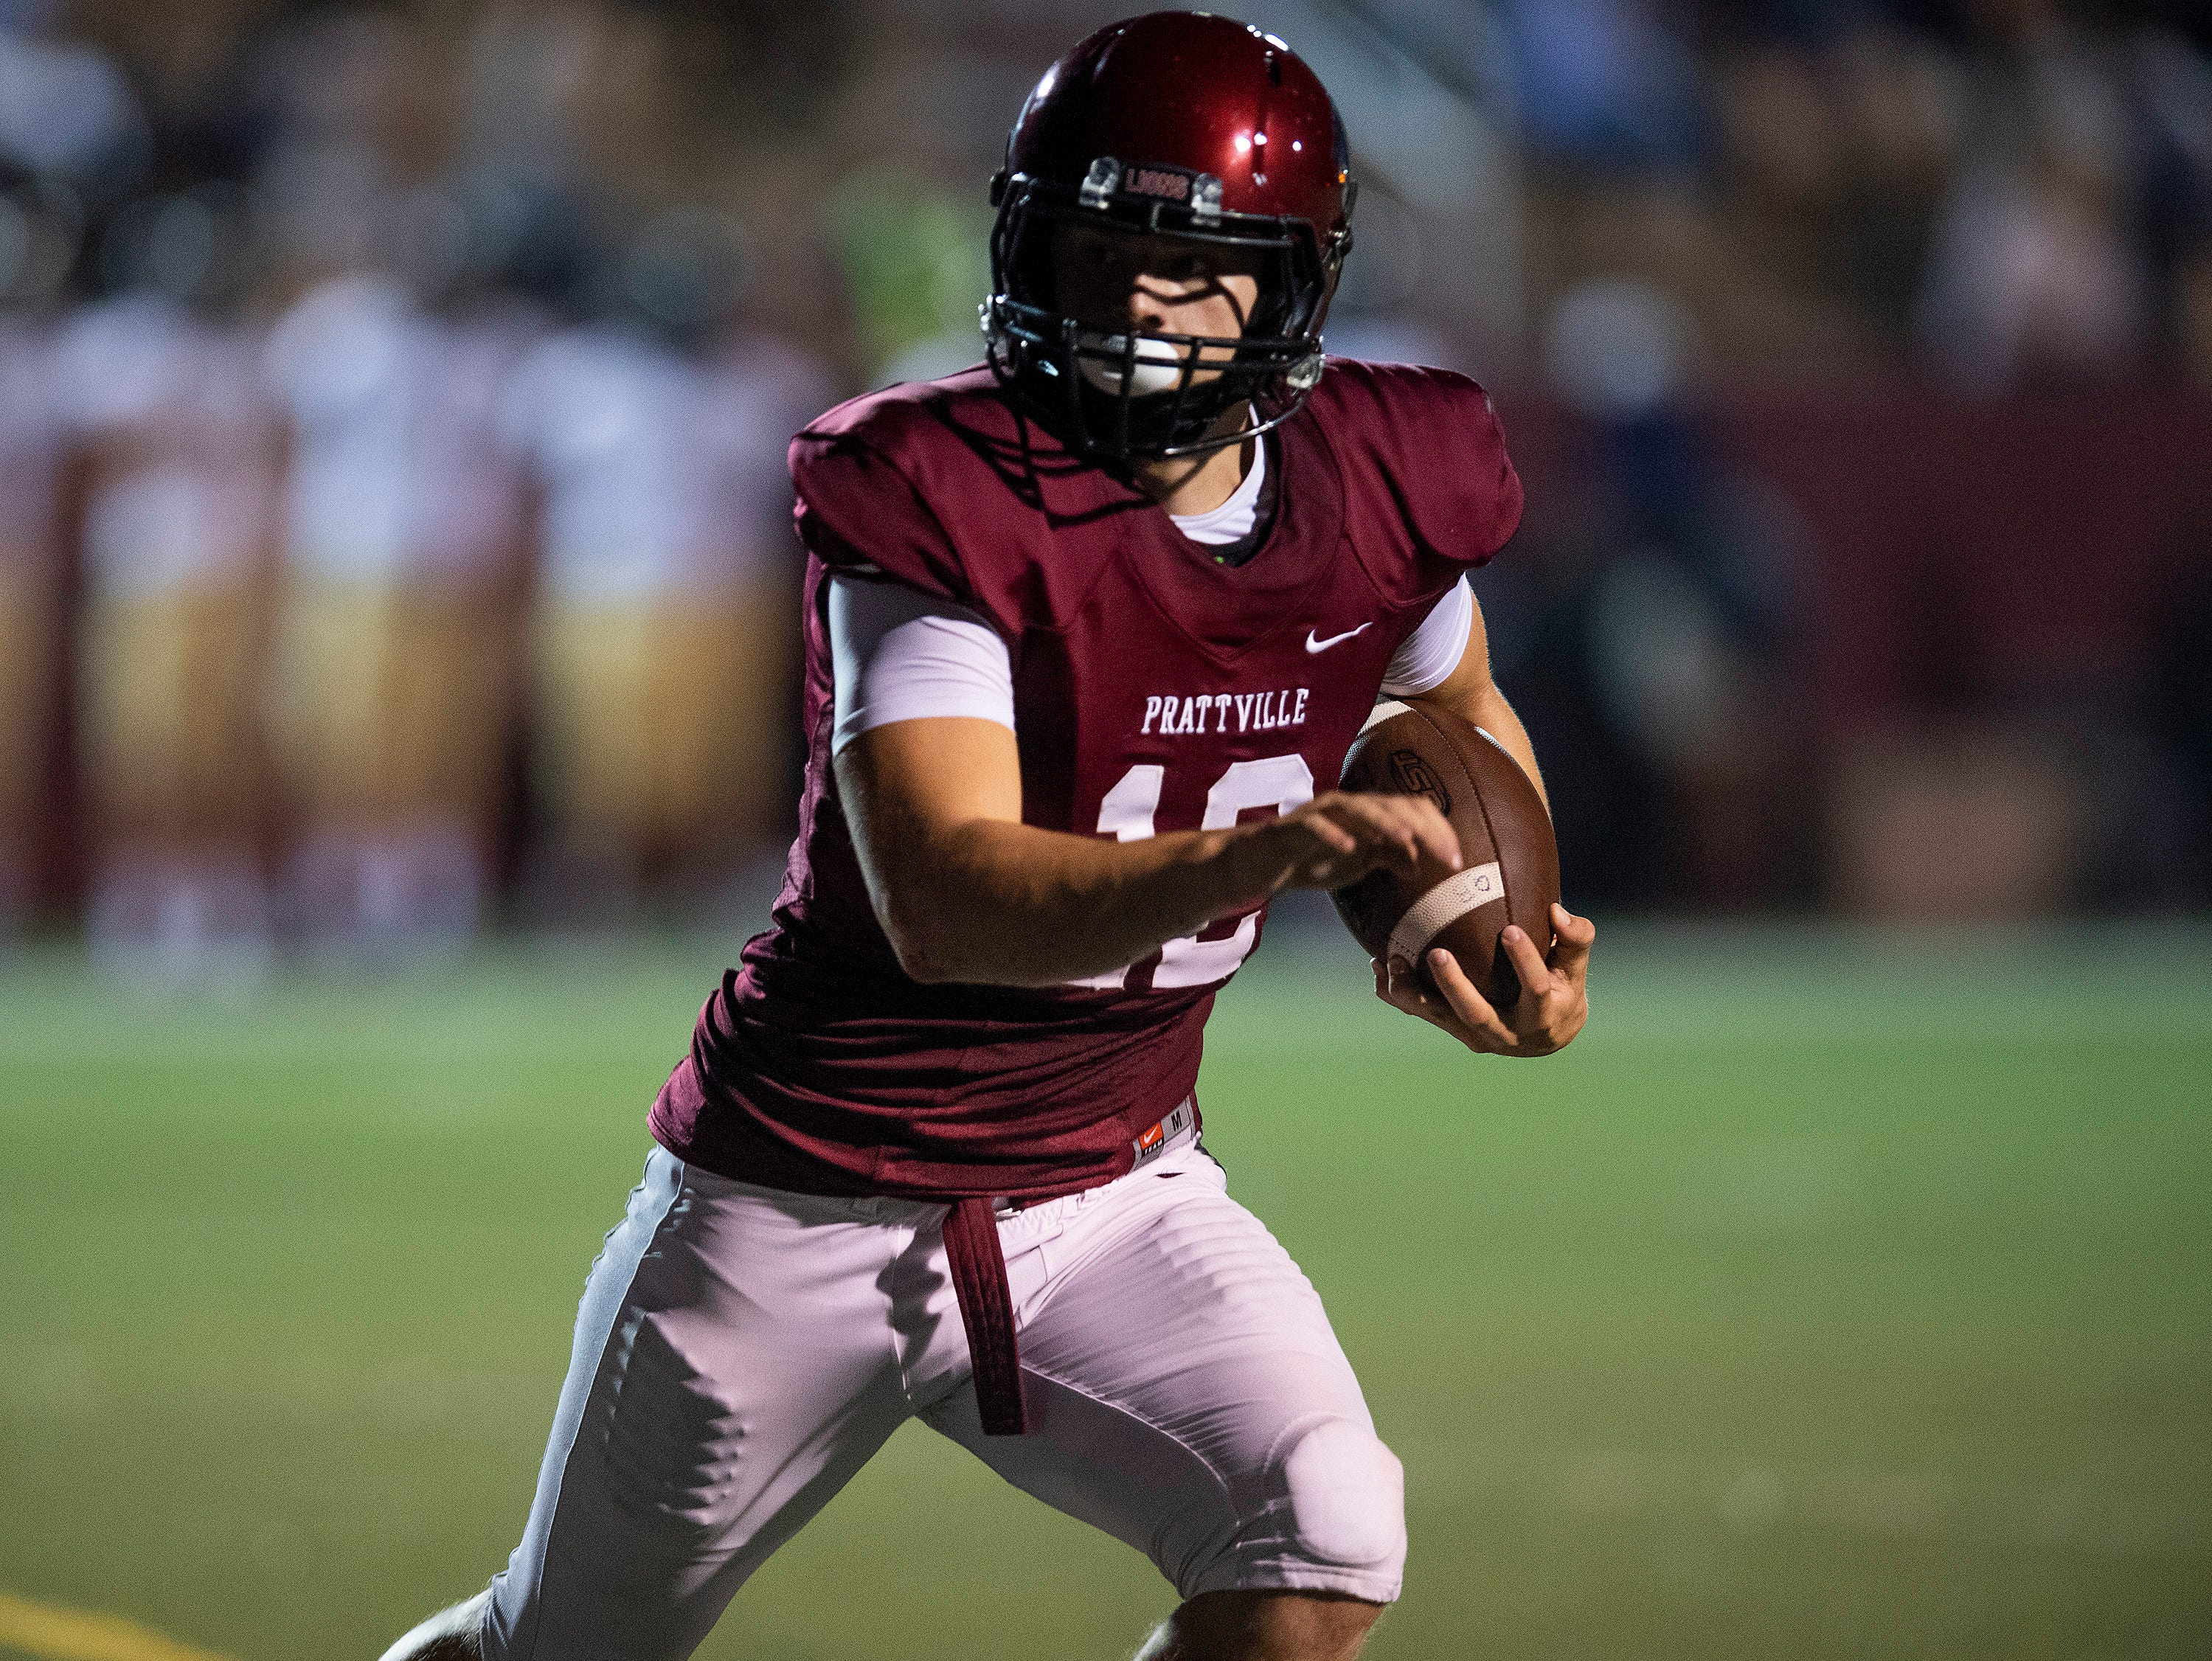 Prattville's Kyle Kramer. Carries for a touchdown against Foley at Stanley-Jensen Stadium in Prattville, Ala., on Friday August 24, 2018.